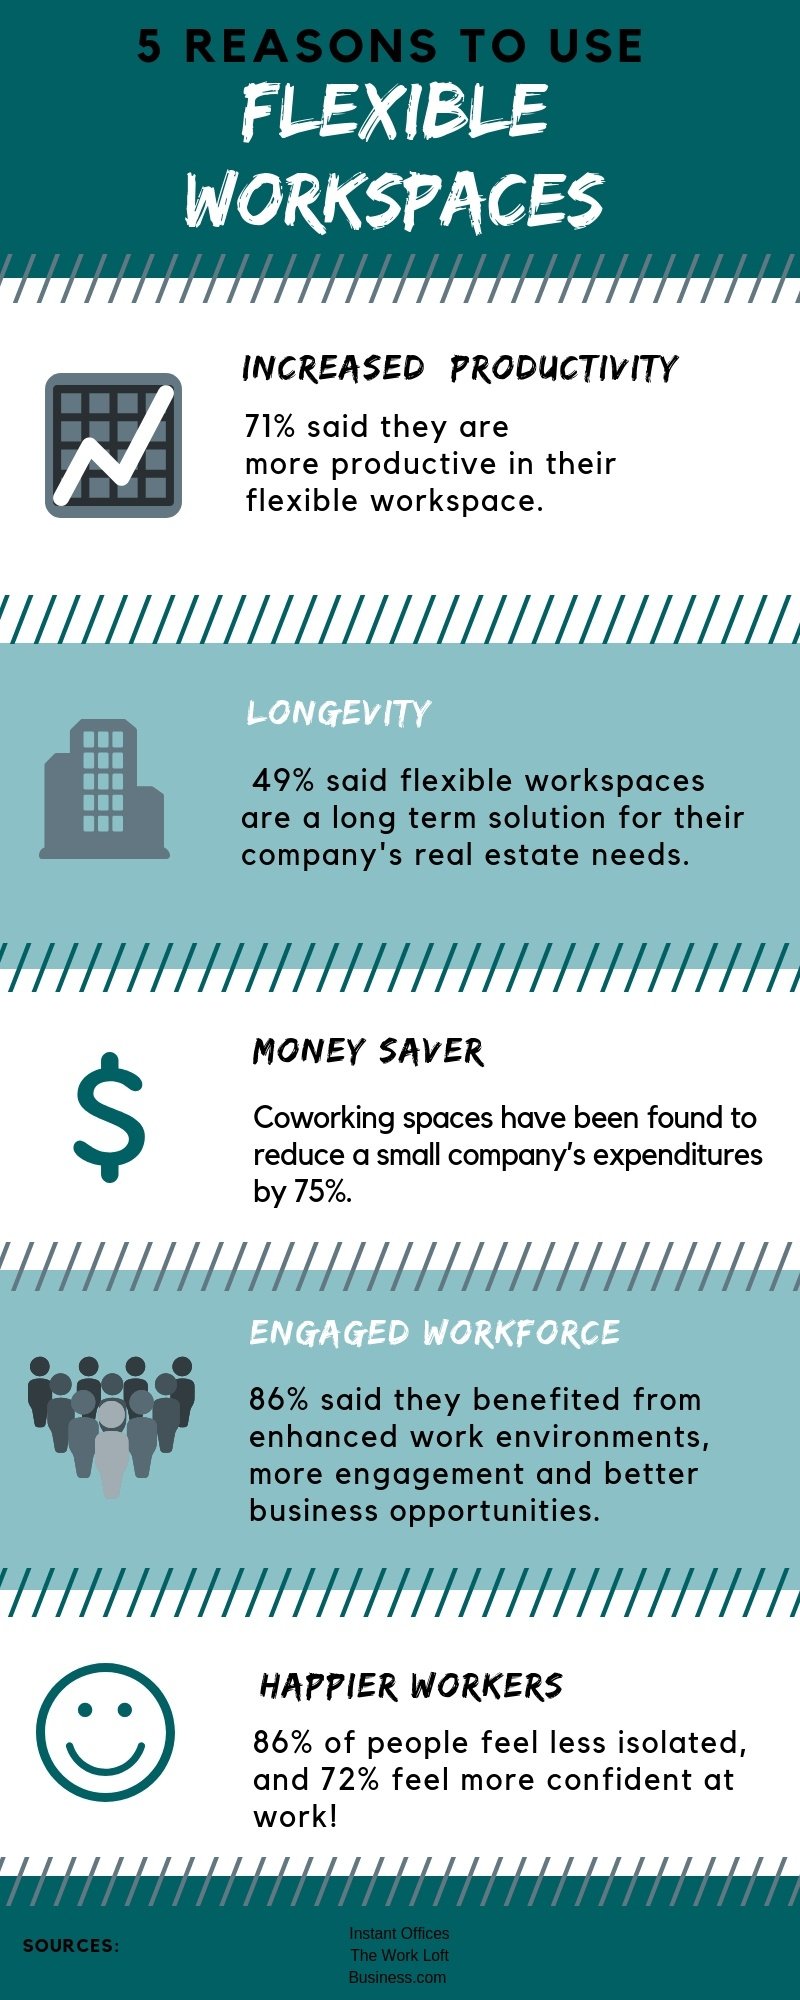 5 Reasons To Use Flexible Workspaces